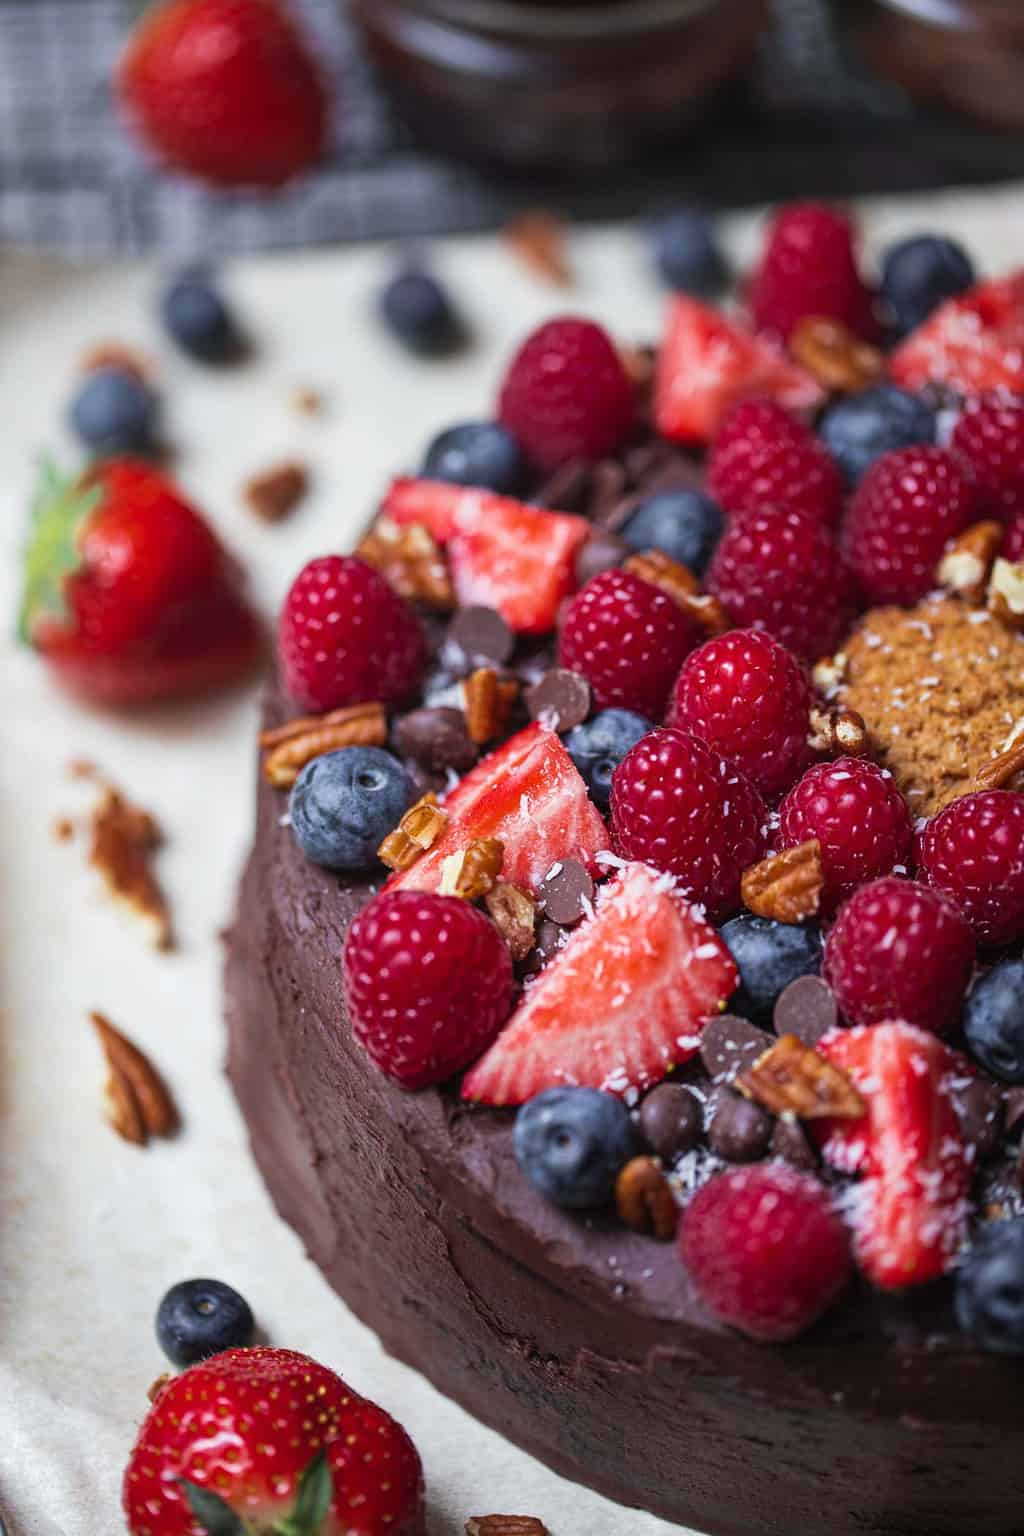 Chocolate cake with berries on top